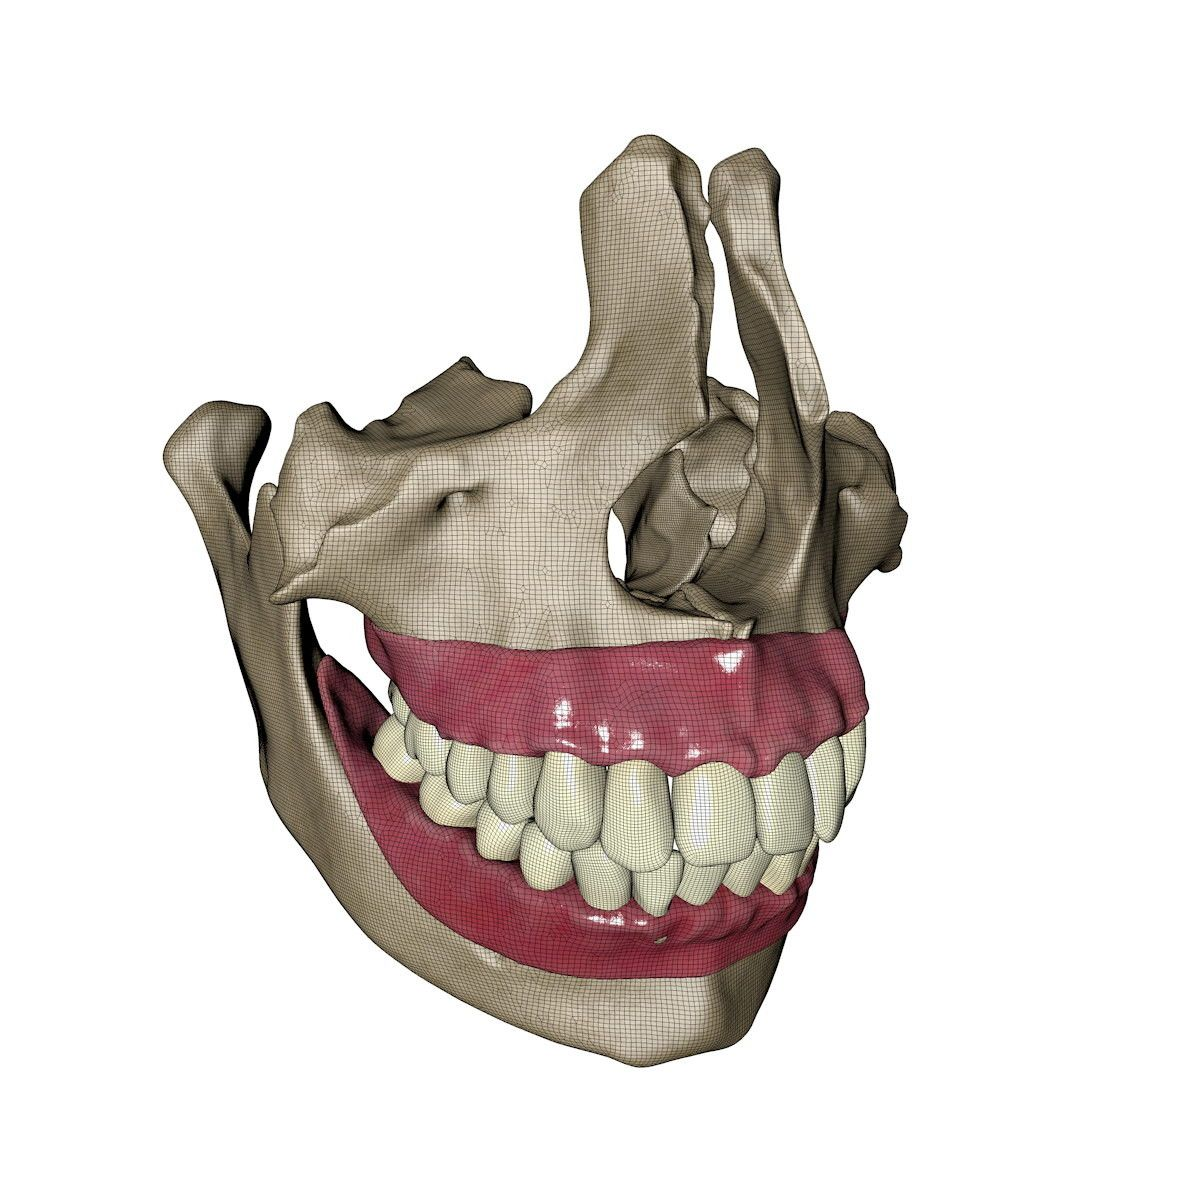 3d human jawbones teeth gums model | MUSCULOSQUELETAL | Pinterest ...